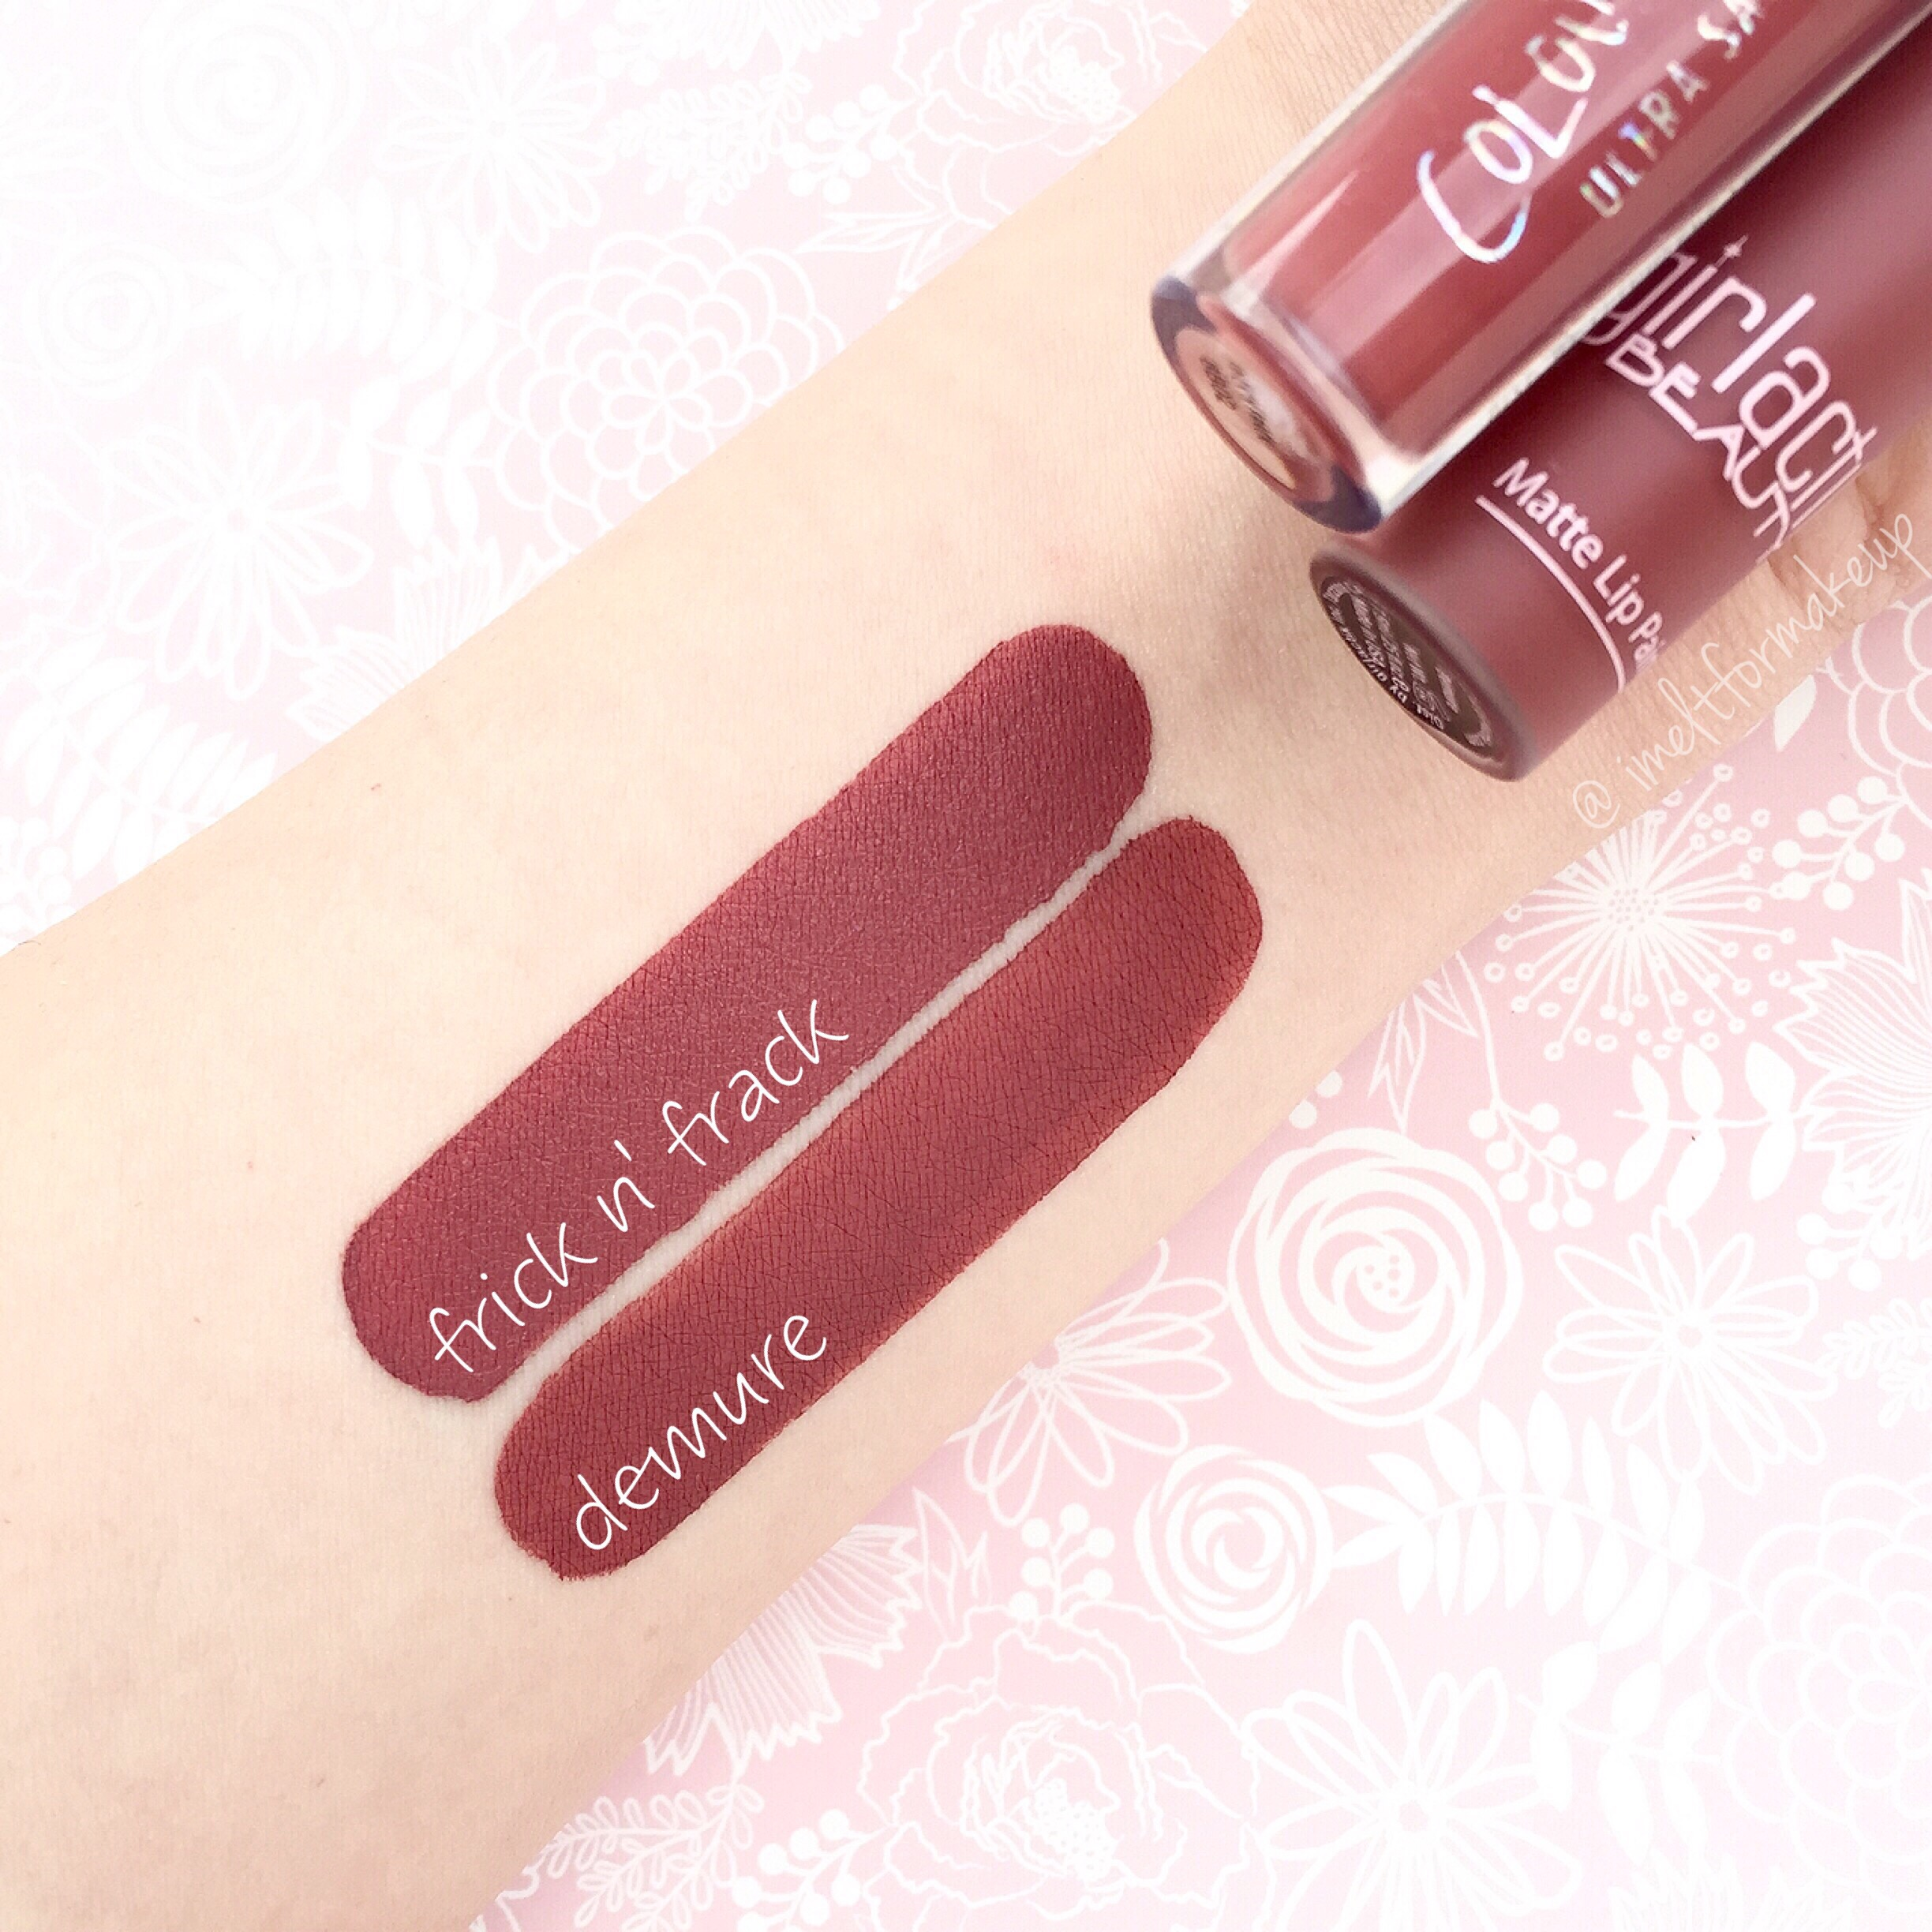 Colourpop Swatches List Of My Liquid Lipstick Collection